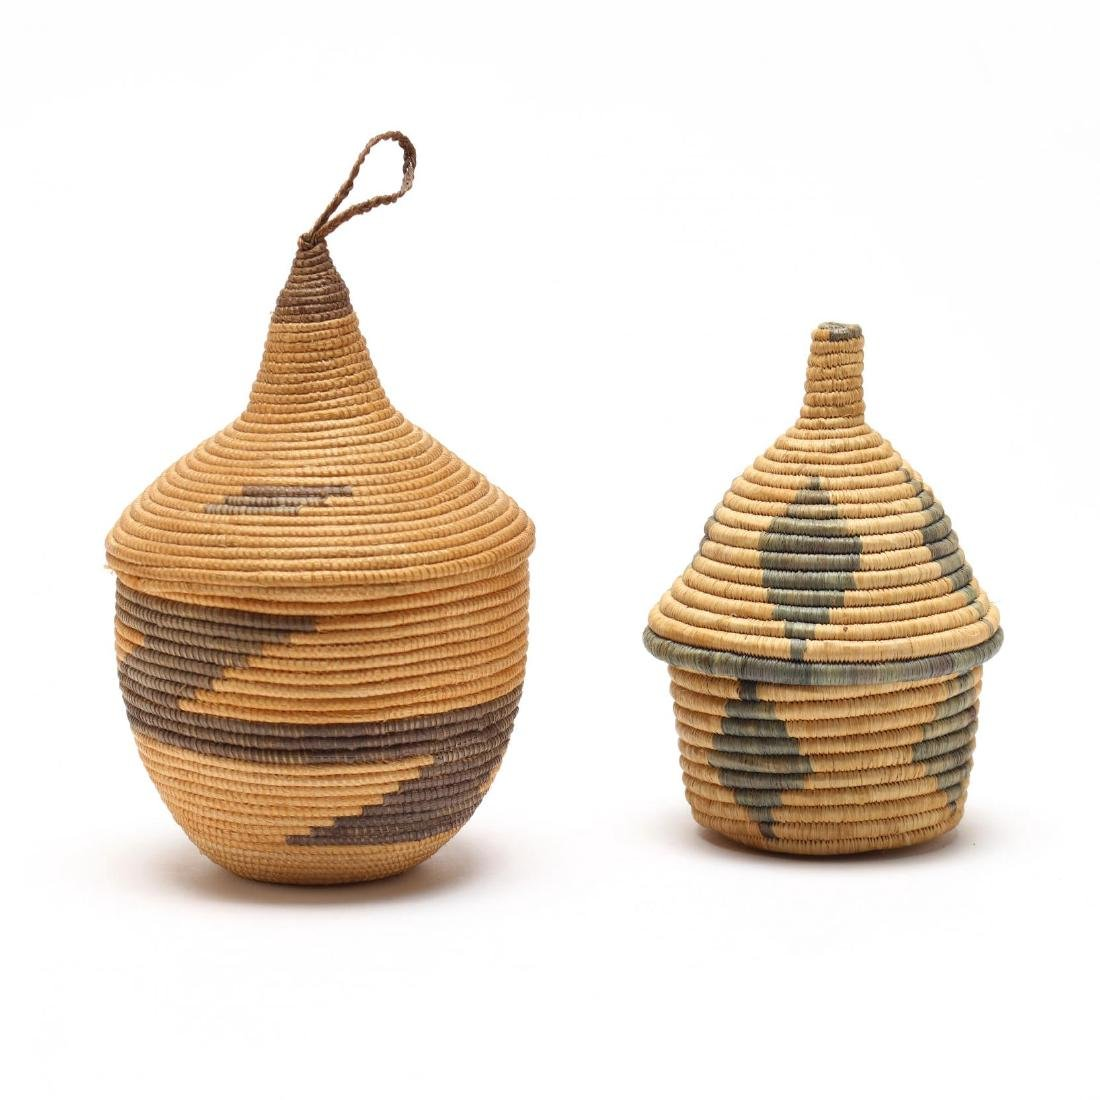 Two African Lidded Tutsi Baskets